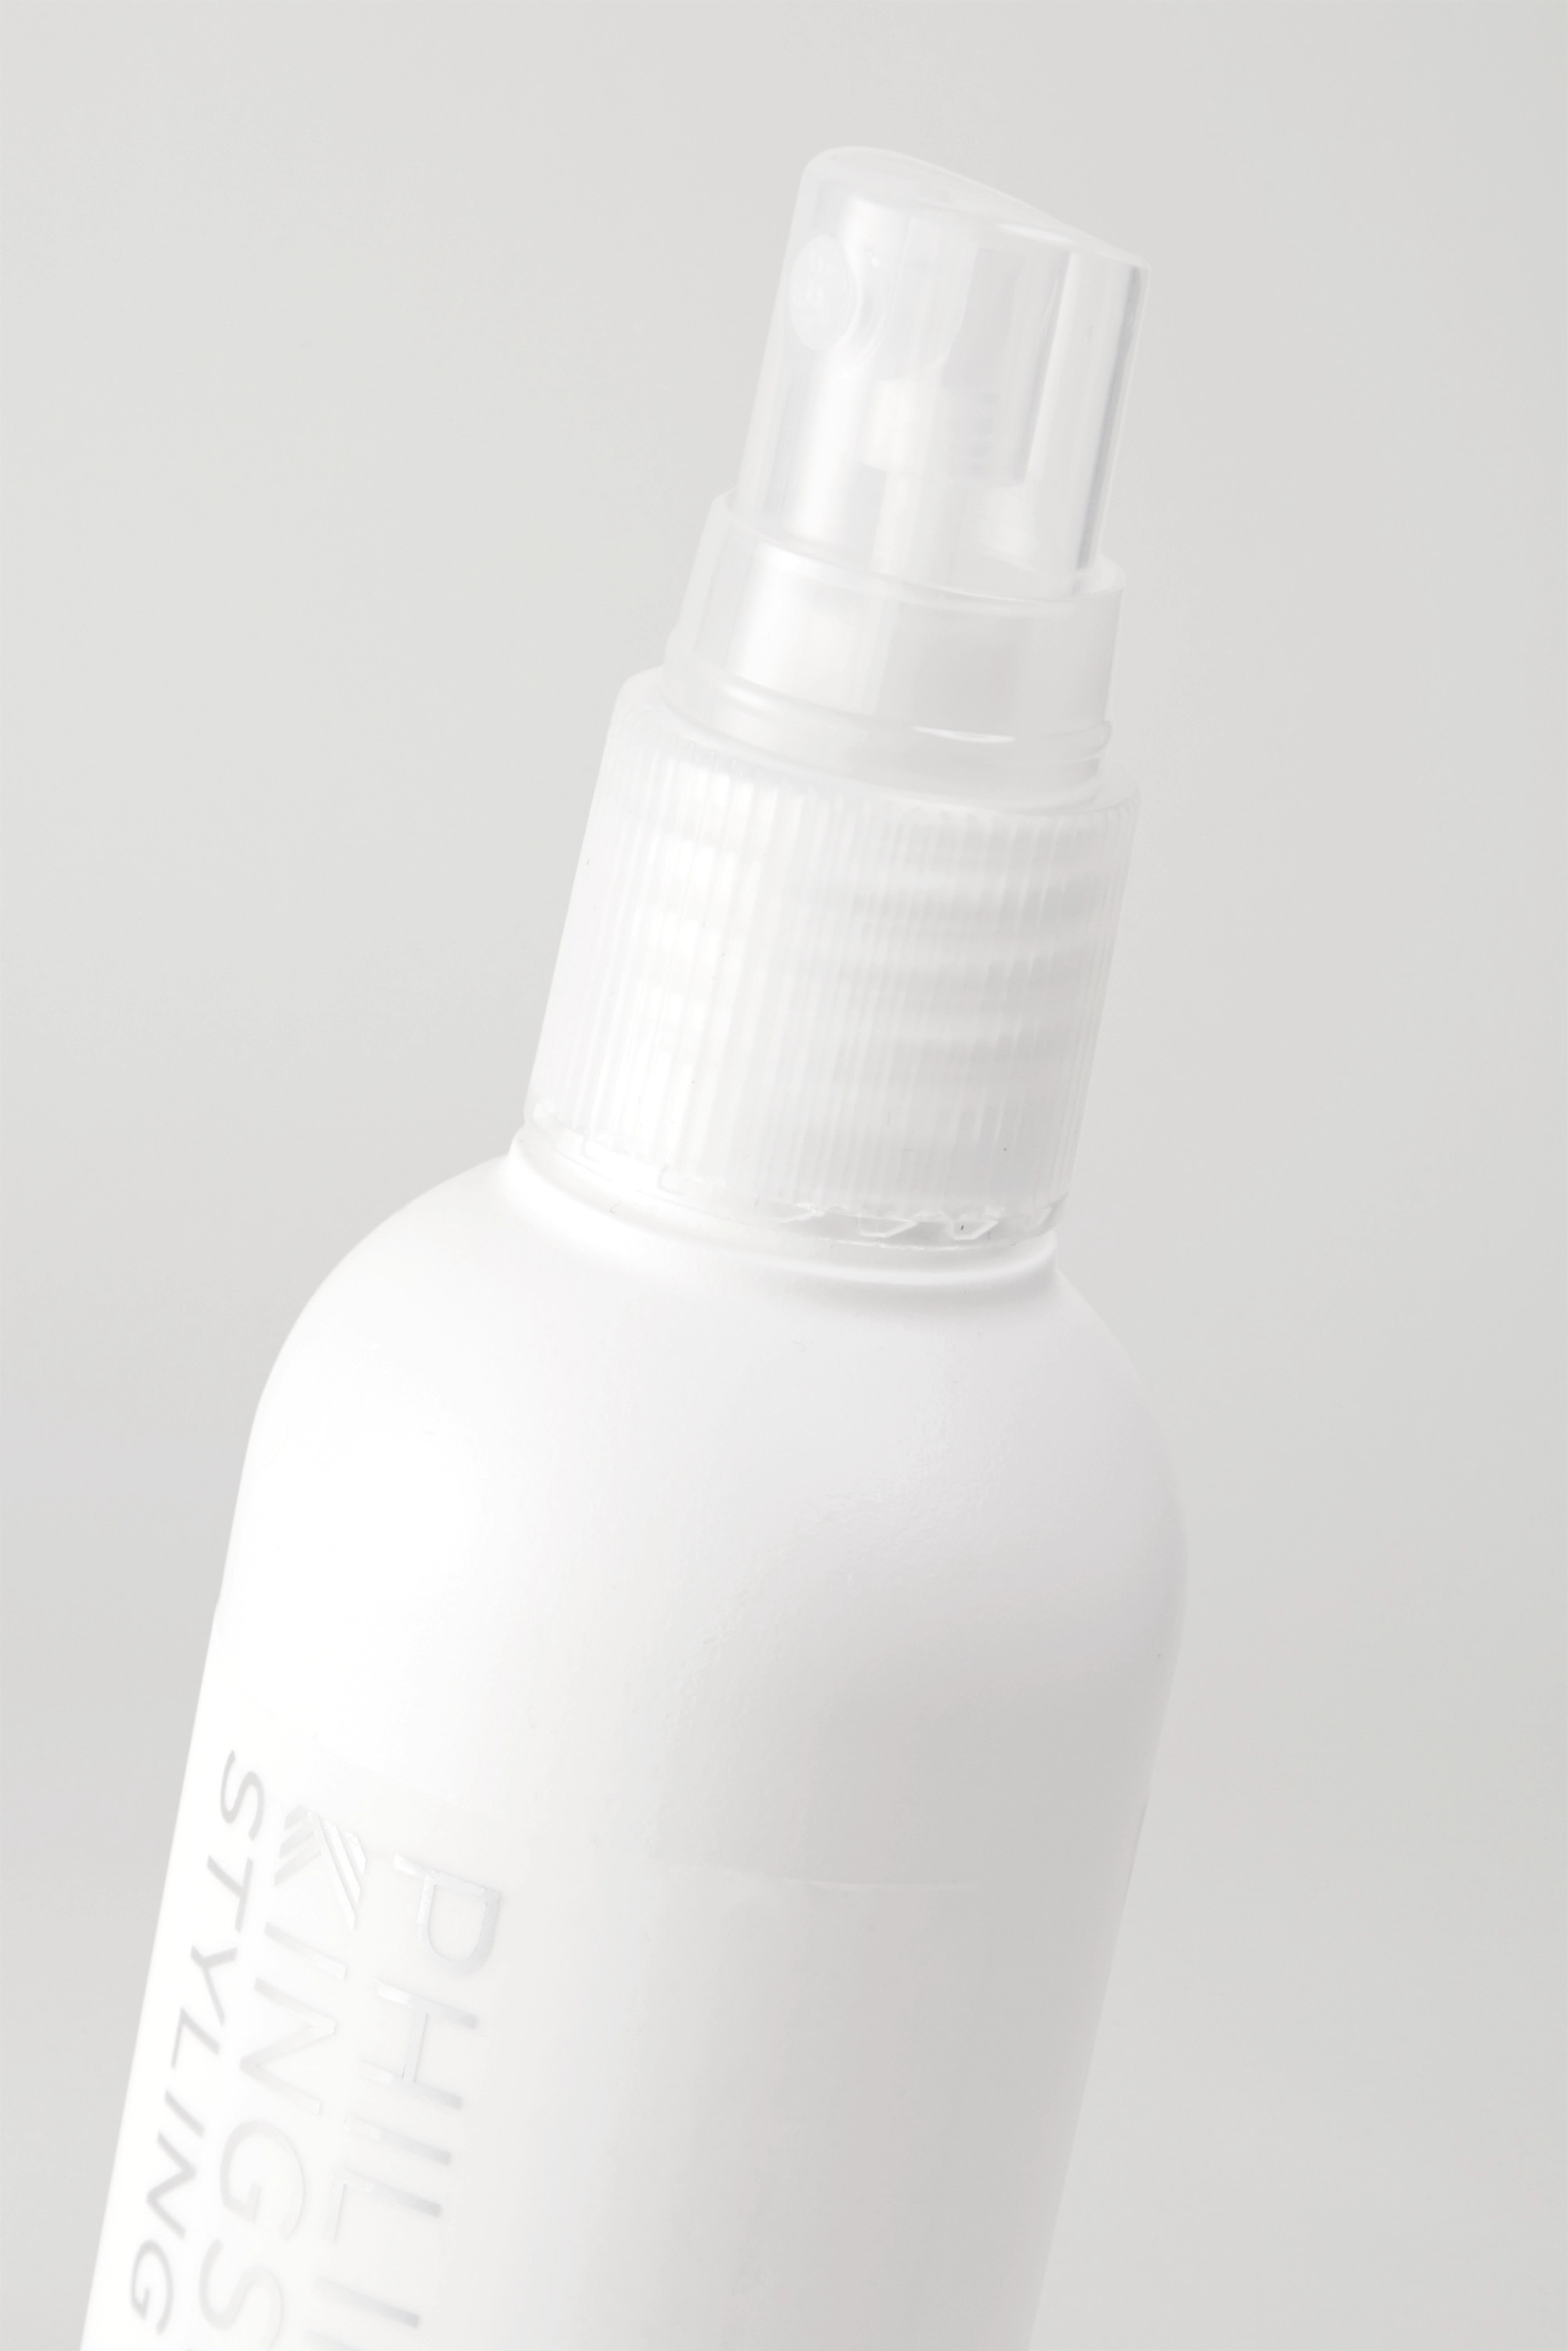 PHILIP KINGSLEY Perfecting Primer, 125ml